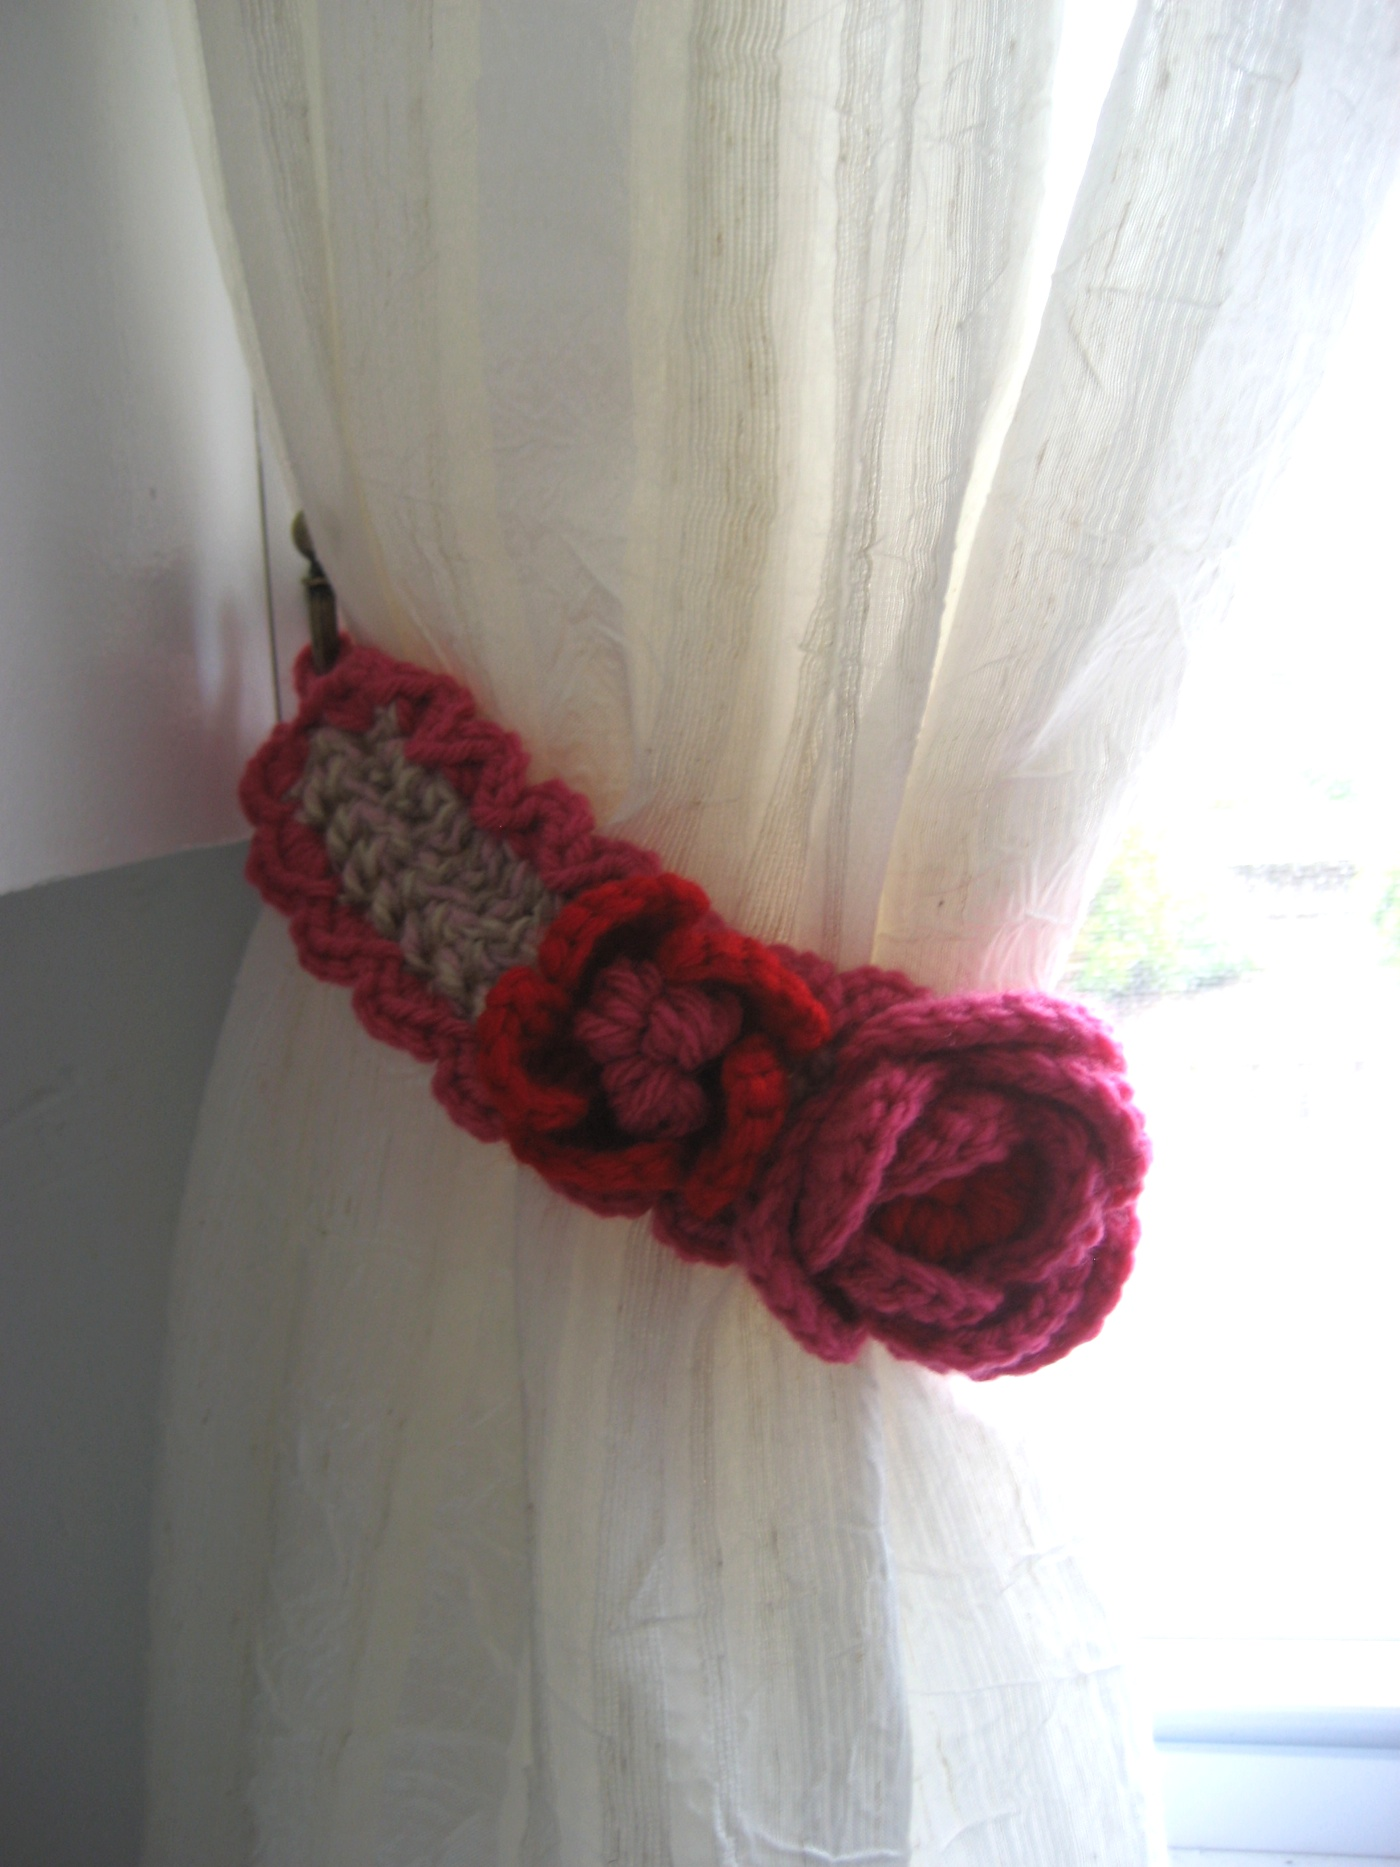 Crochet Curtains and Hangings - 2002 - 2007